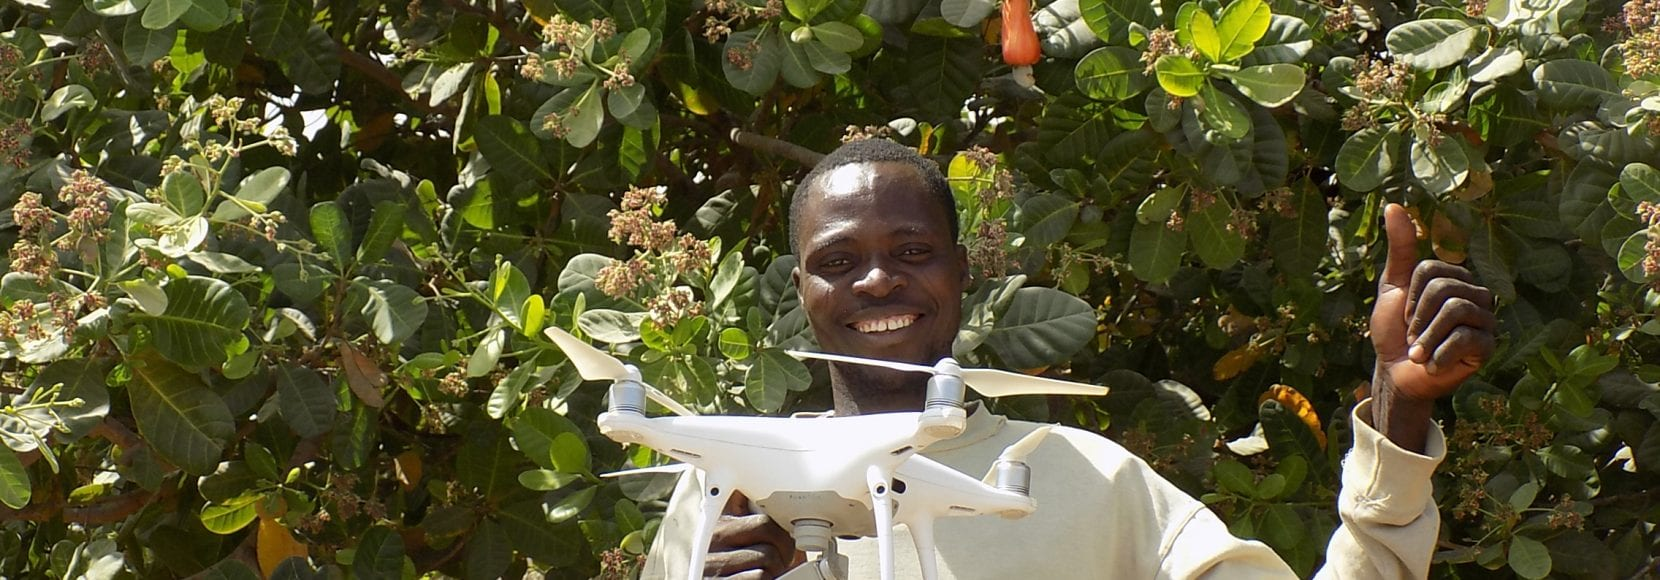 Man smiling holding drone